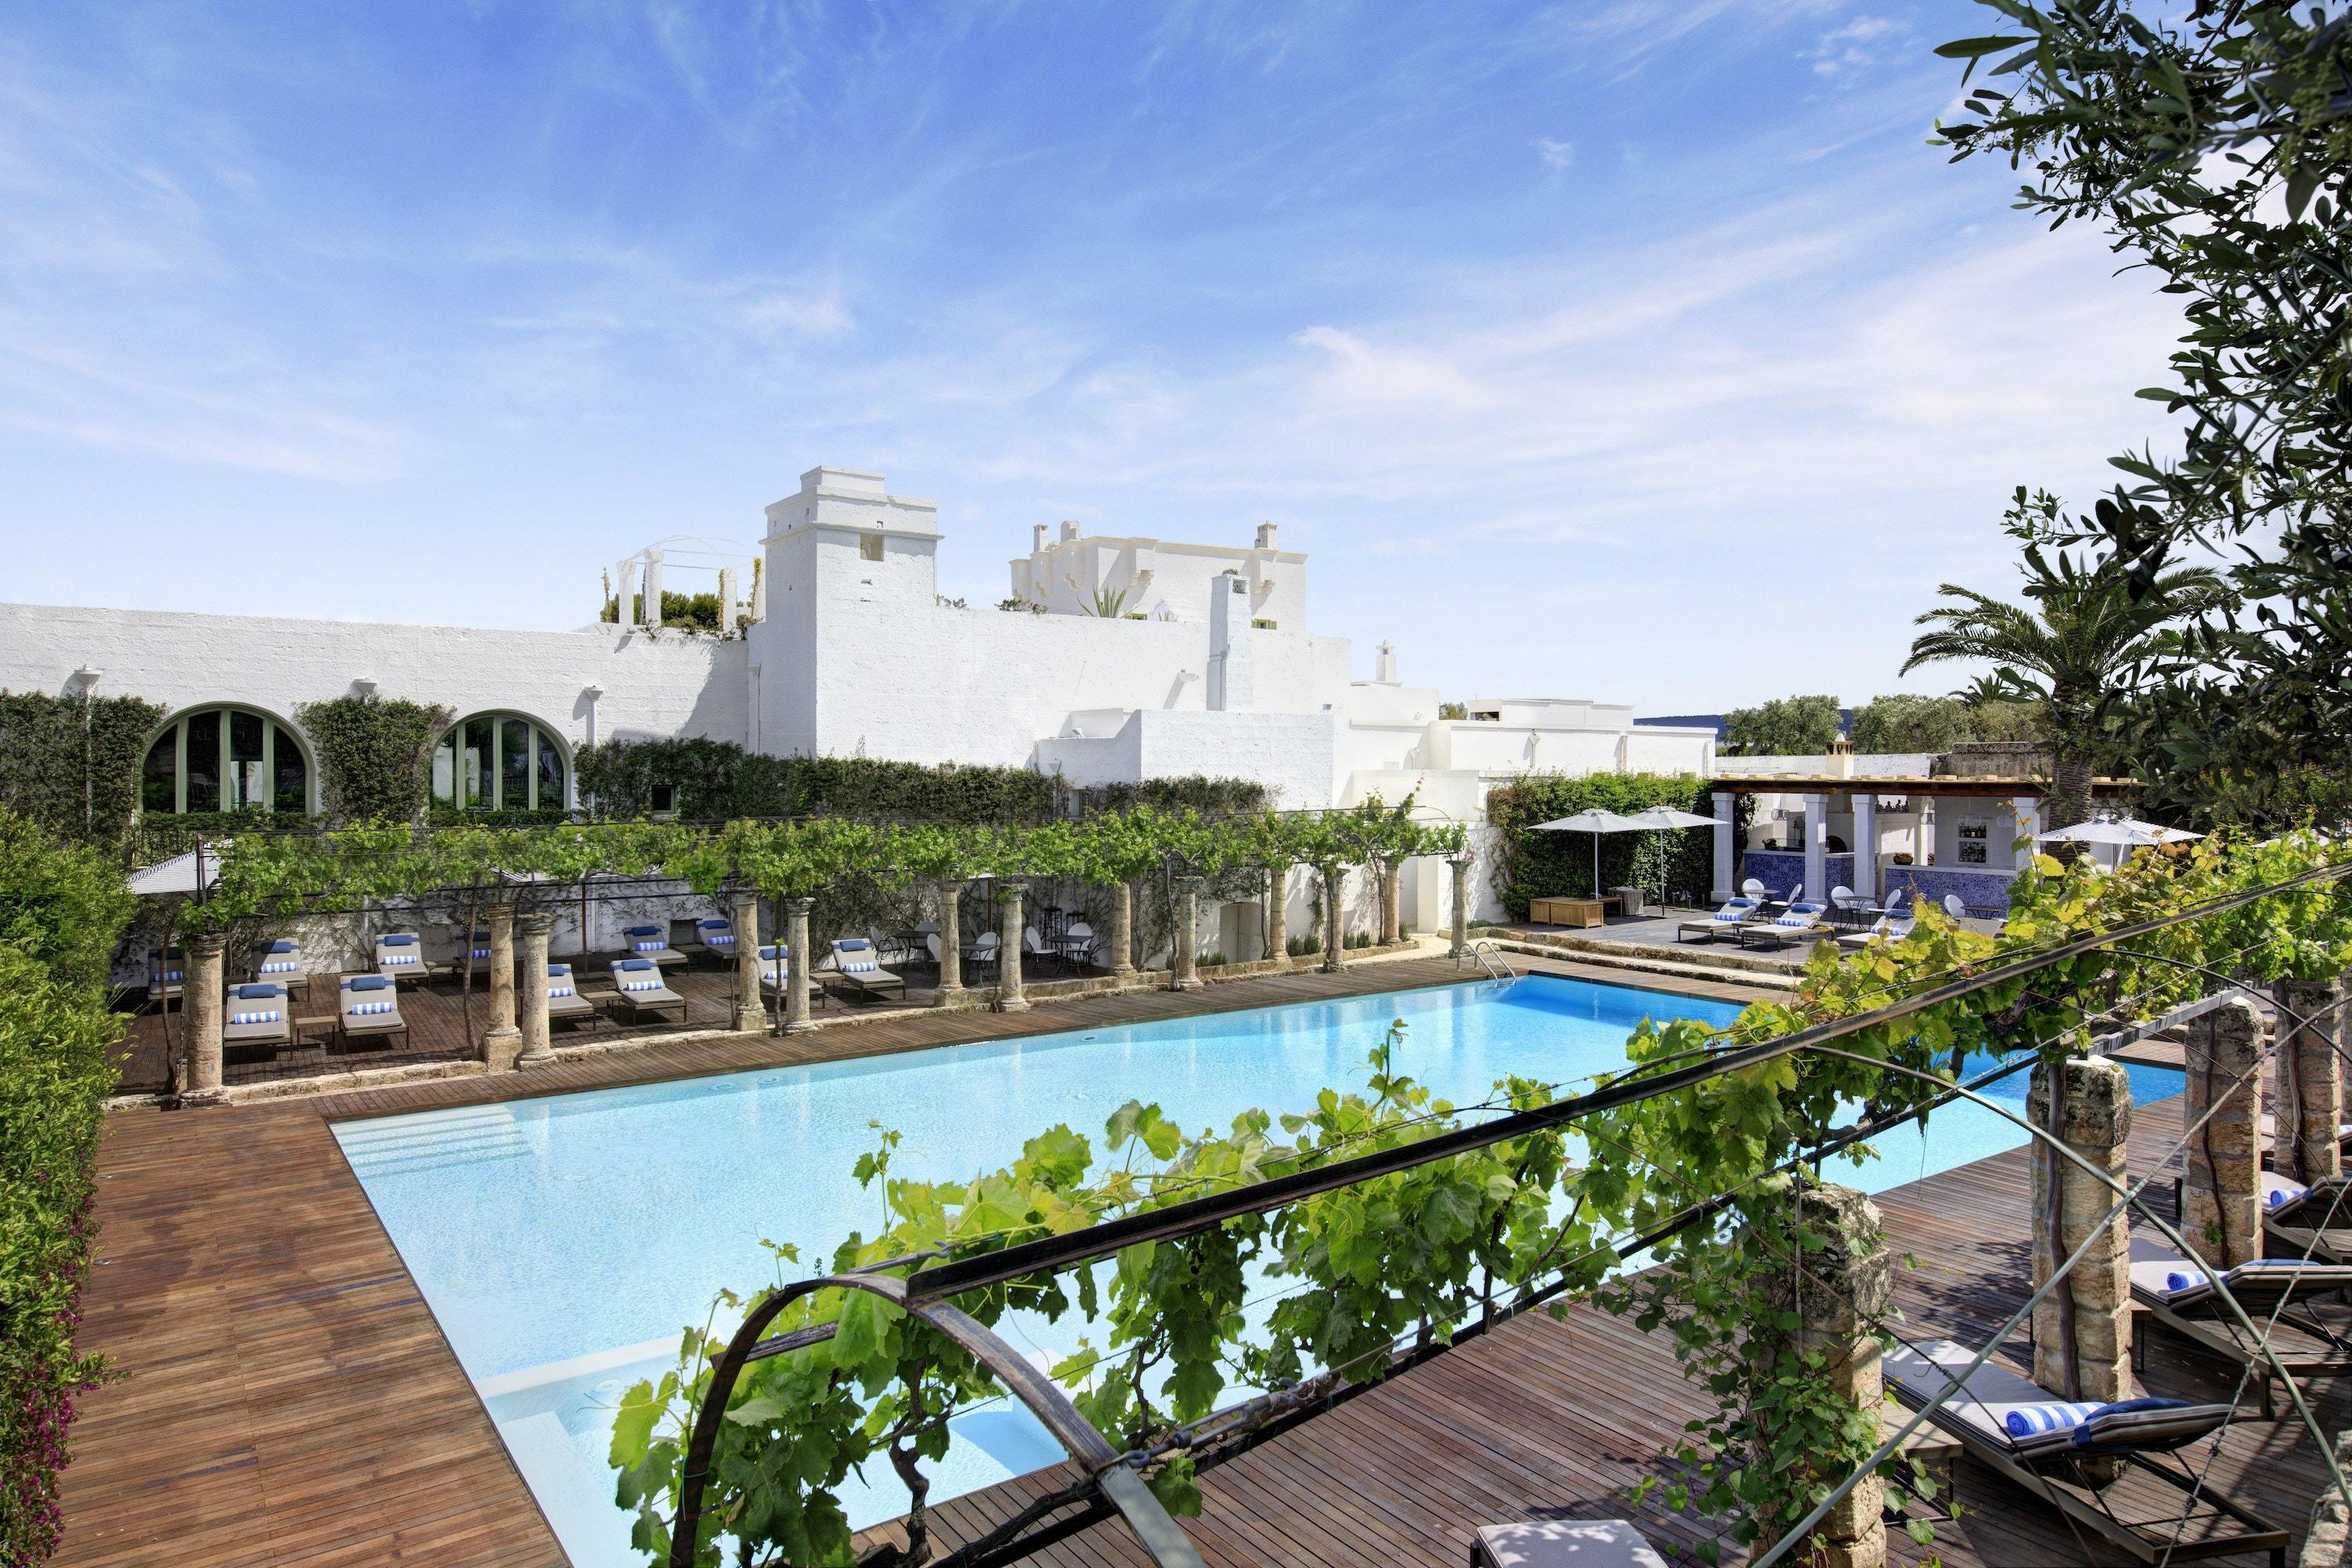 """<a href=""""https://www.roccofortehotels.com/hotels-and-resorts/masseria-torre-maizza/"""" rel=""""nofollow noopener"""" target=""""_blank"""" data-ylk=""""slk:A former farmhouse"""" class=""""link rapid-noclick-resp""""><em>A former farmhouse</em></a><em>:</em> English-Italian hotelier Rocco Forte is the most recent to take a stake in wave of <em>masserie</em> turned swanky hotels in Puglia. The perfect blend of old and new, the former 16th-century farmhouse turned Masseria Torre Maizza now comes complete with a rooftop terrace, loads of bougainvillea-covered white walls, a day spa, and 40 decadently appointed rooms and suites by Olga Polizzi."""